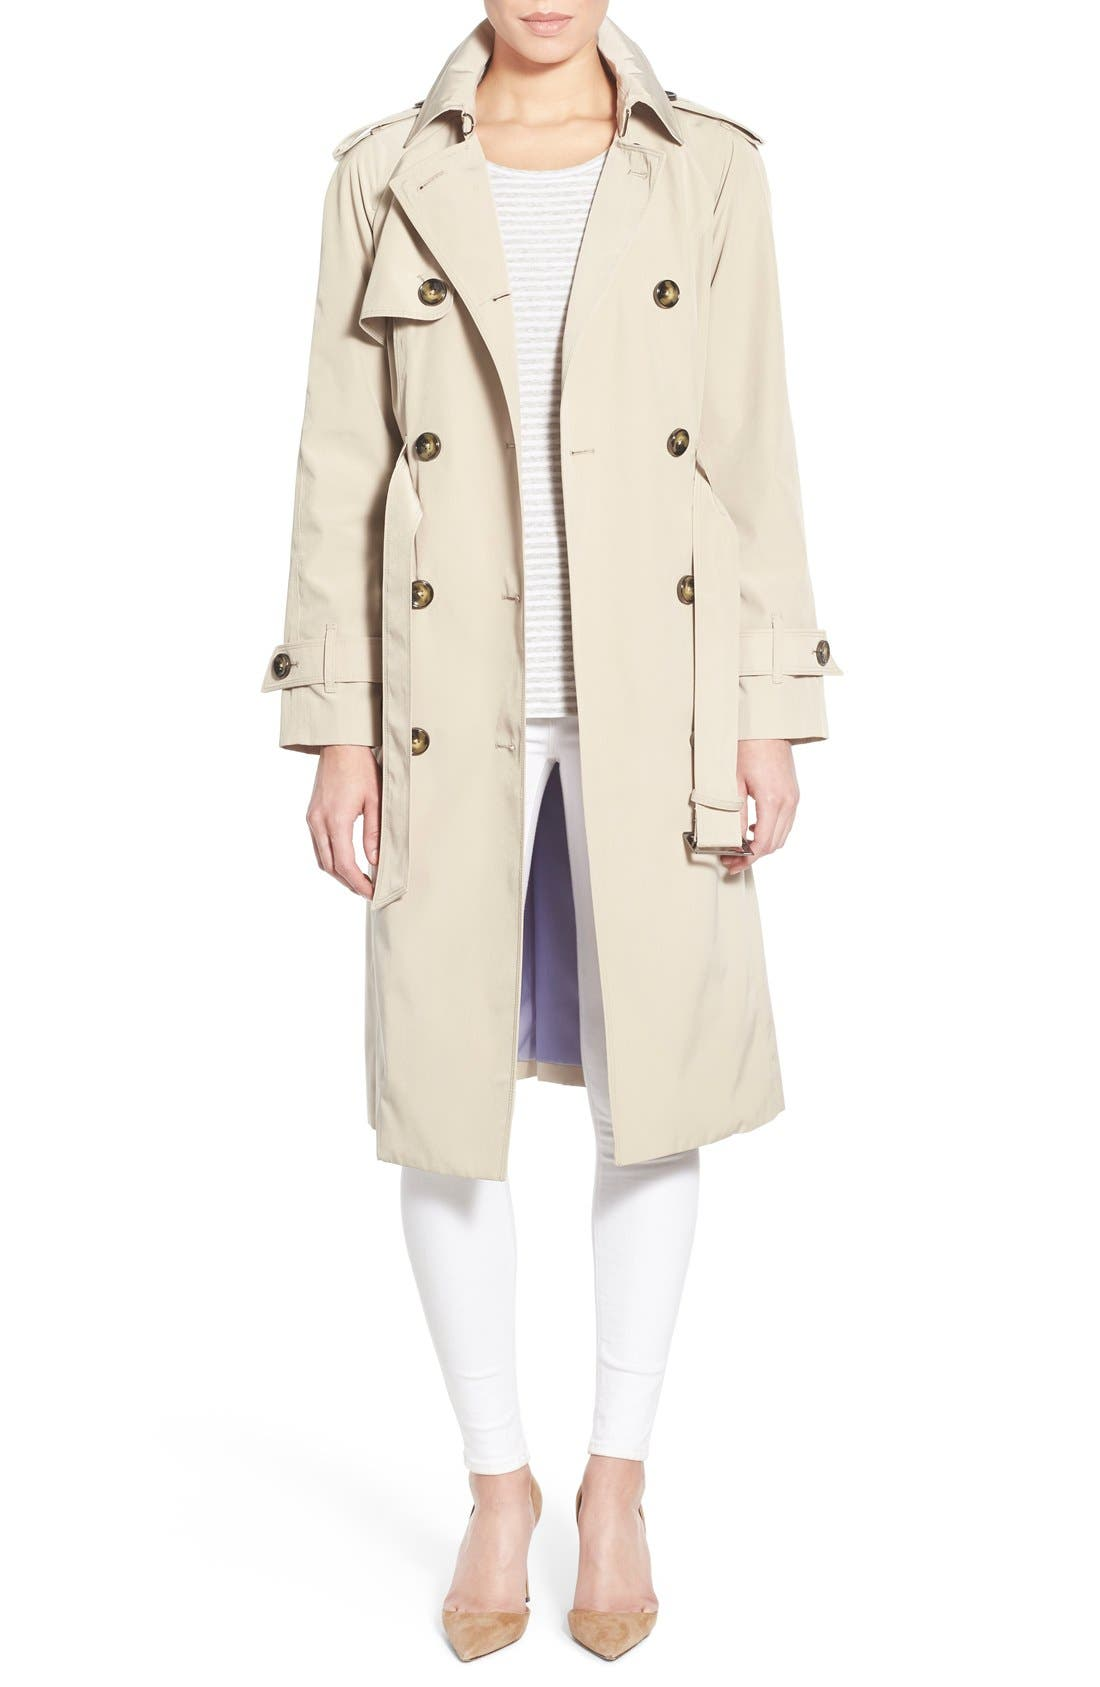 Alternate Image 1 Selected - London Fog Double Breasted Trench Coat (Regular & Petite)